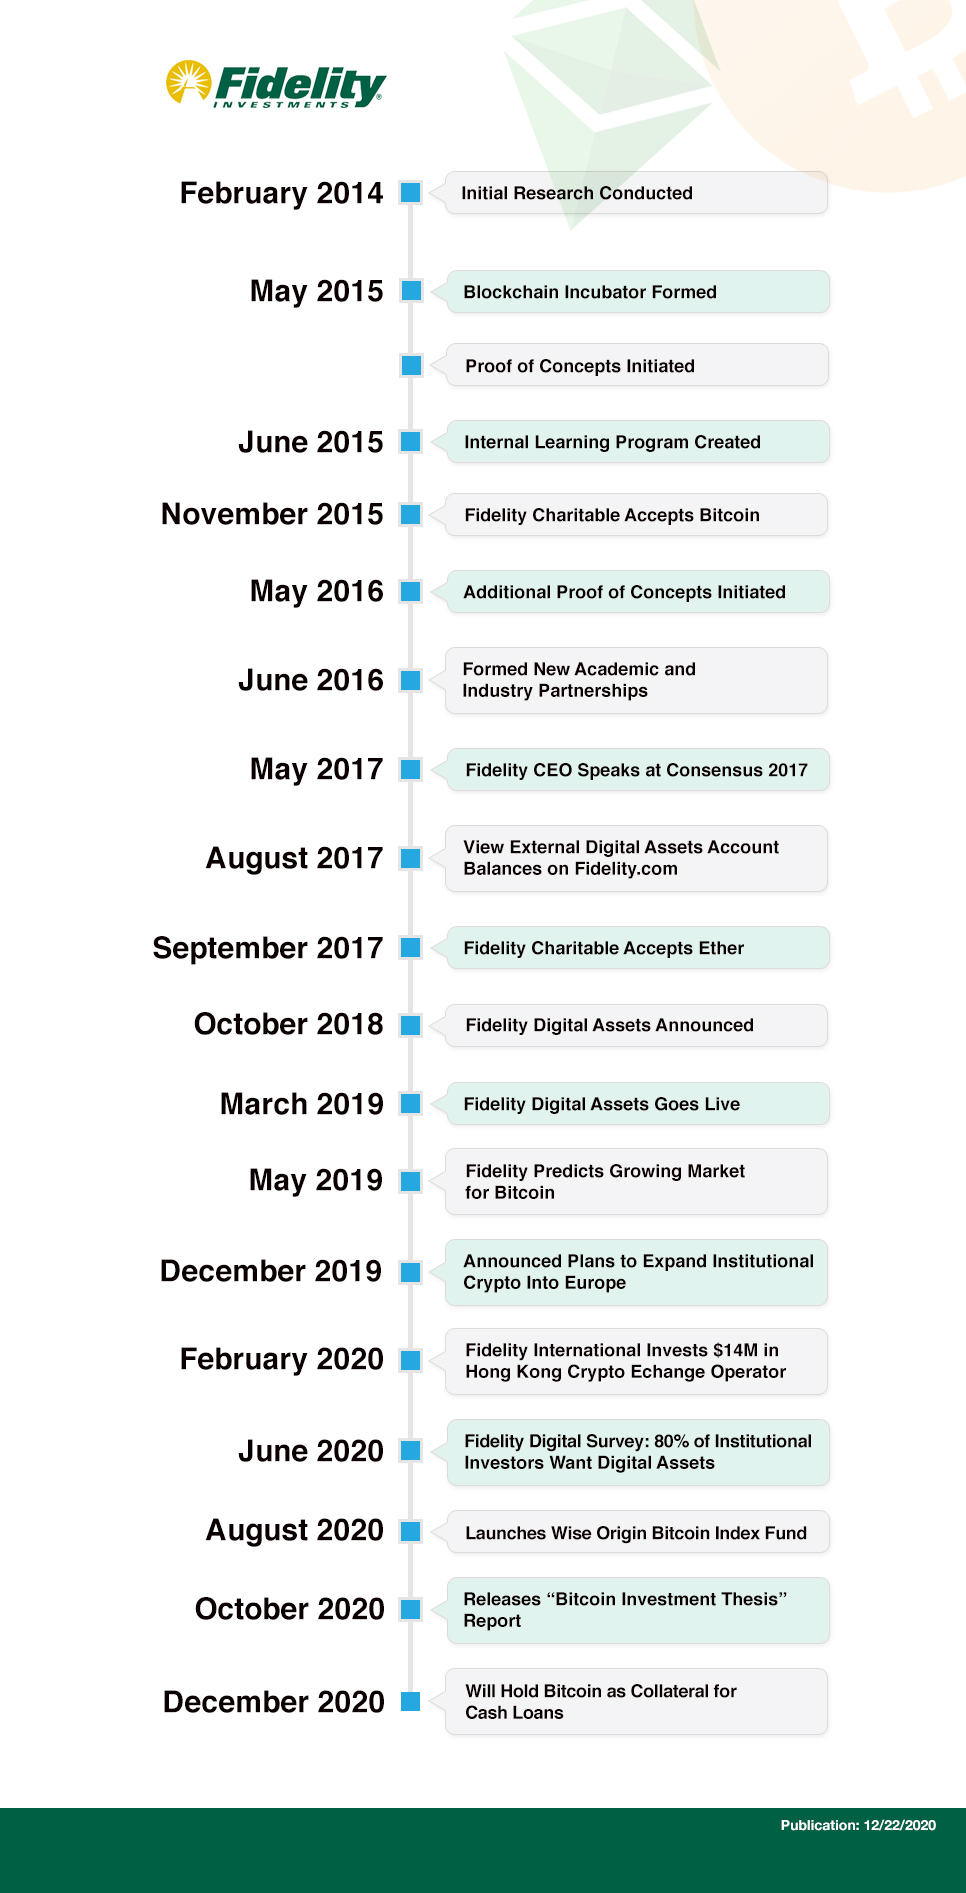 Fidelity Investments and Bitcoin Cryptocurrency Adoption Timeline